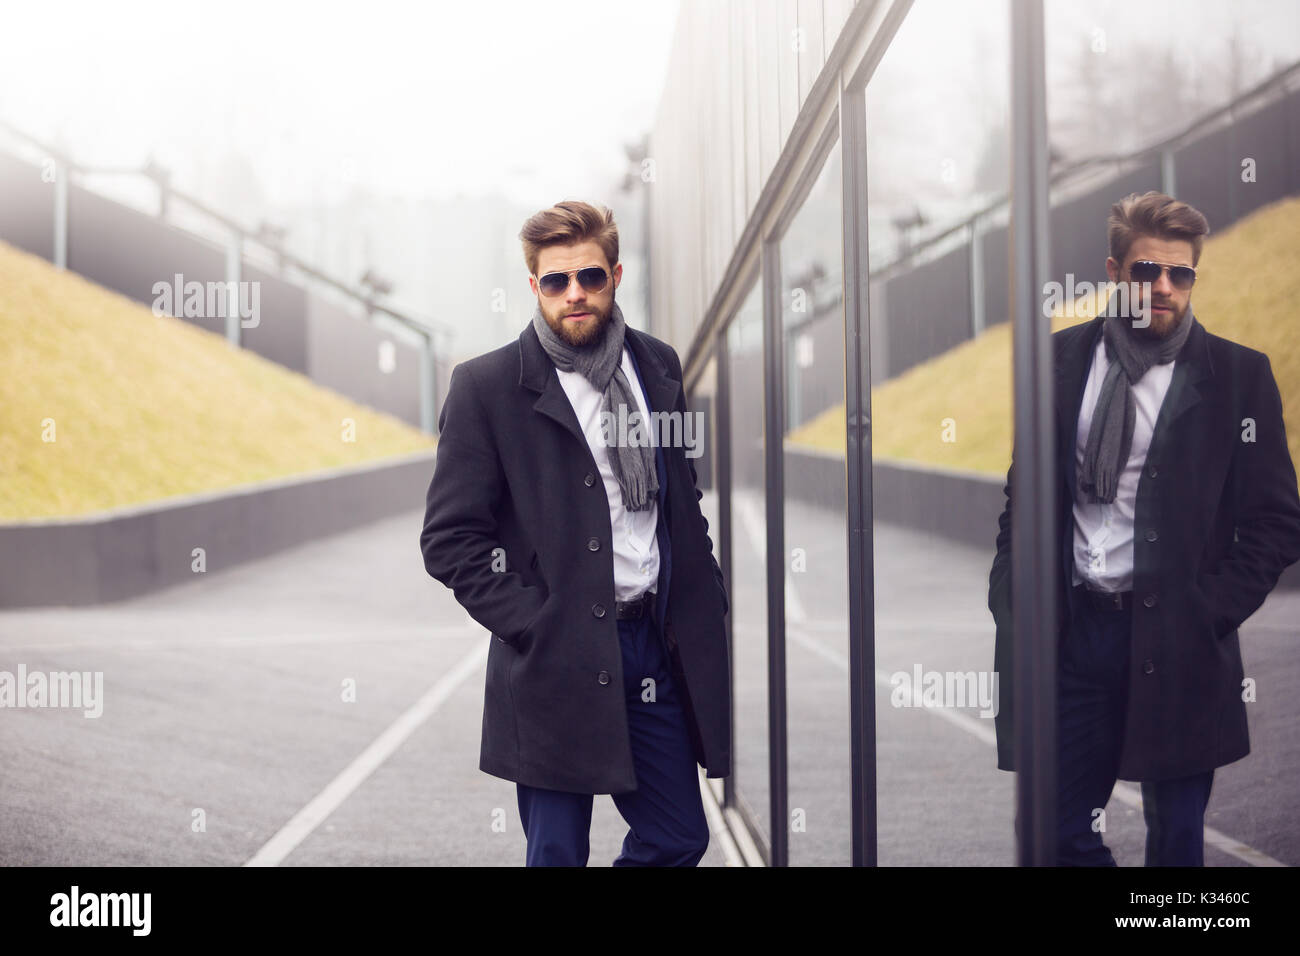 A photo of young, fashionable buinessman standing next to modern building and posing to the photo. - Stock Image